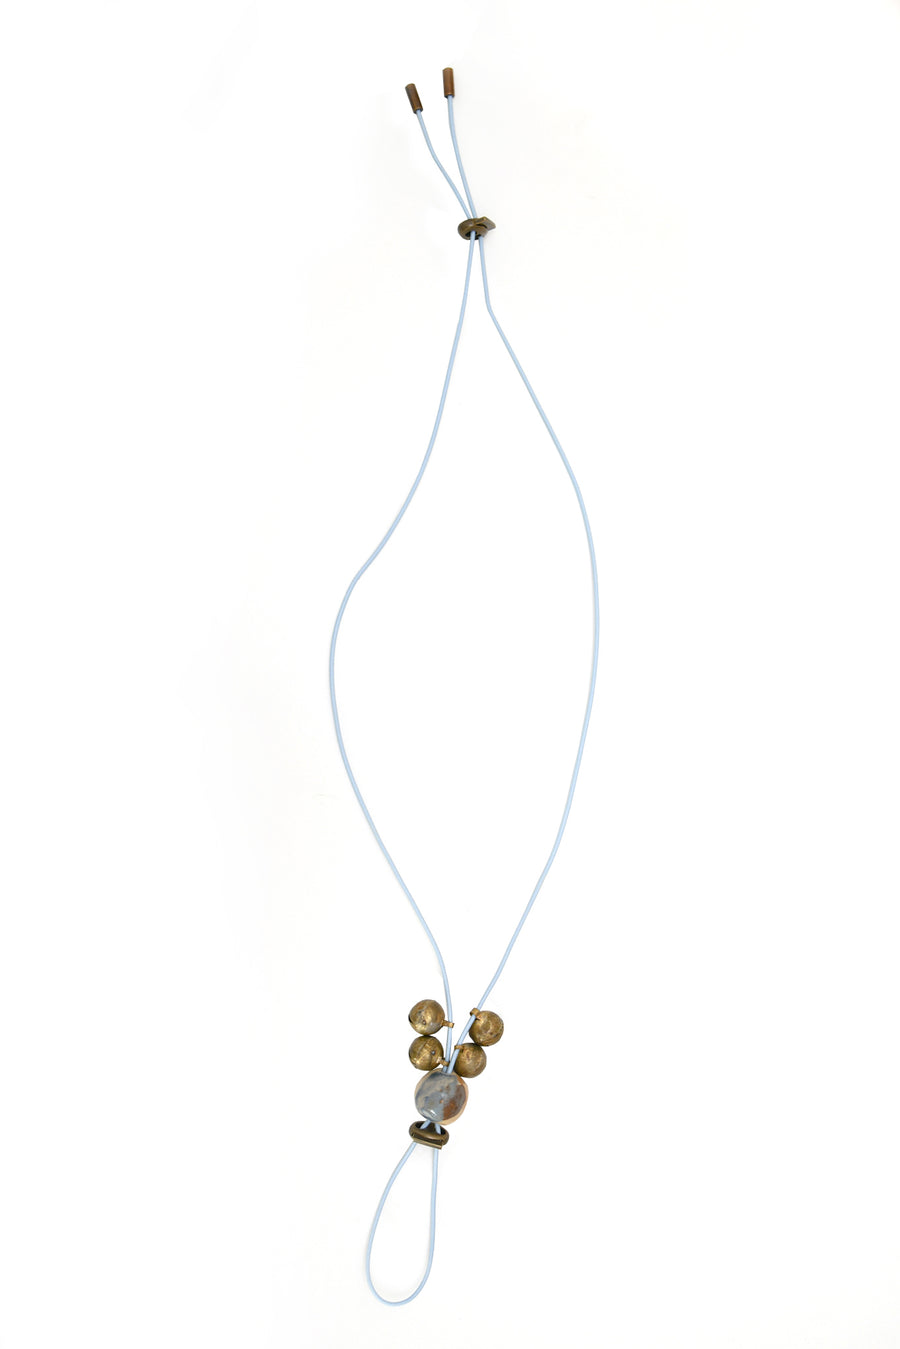 Light Blue Rubber Necklace - OFIR IVGI